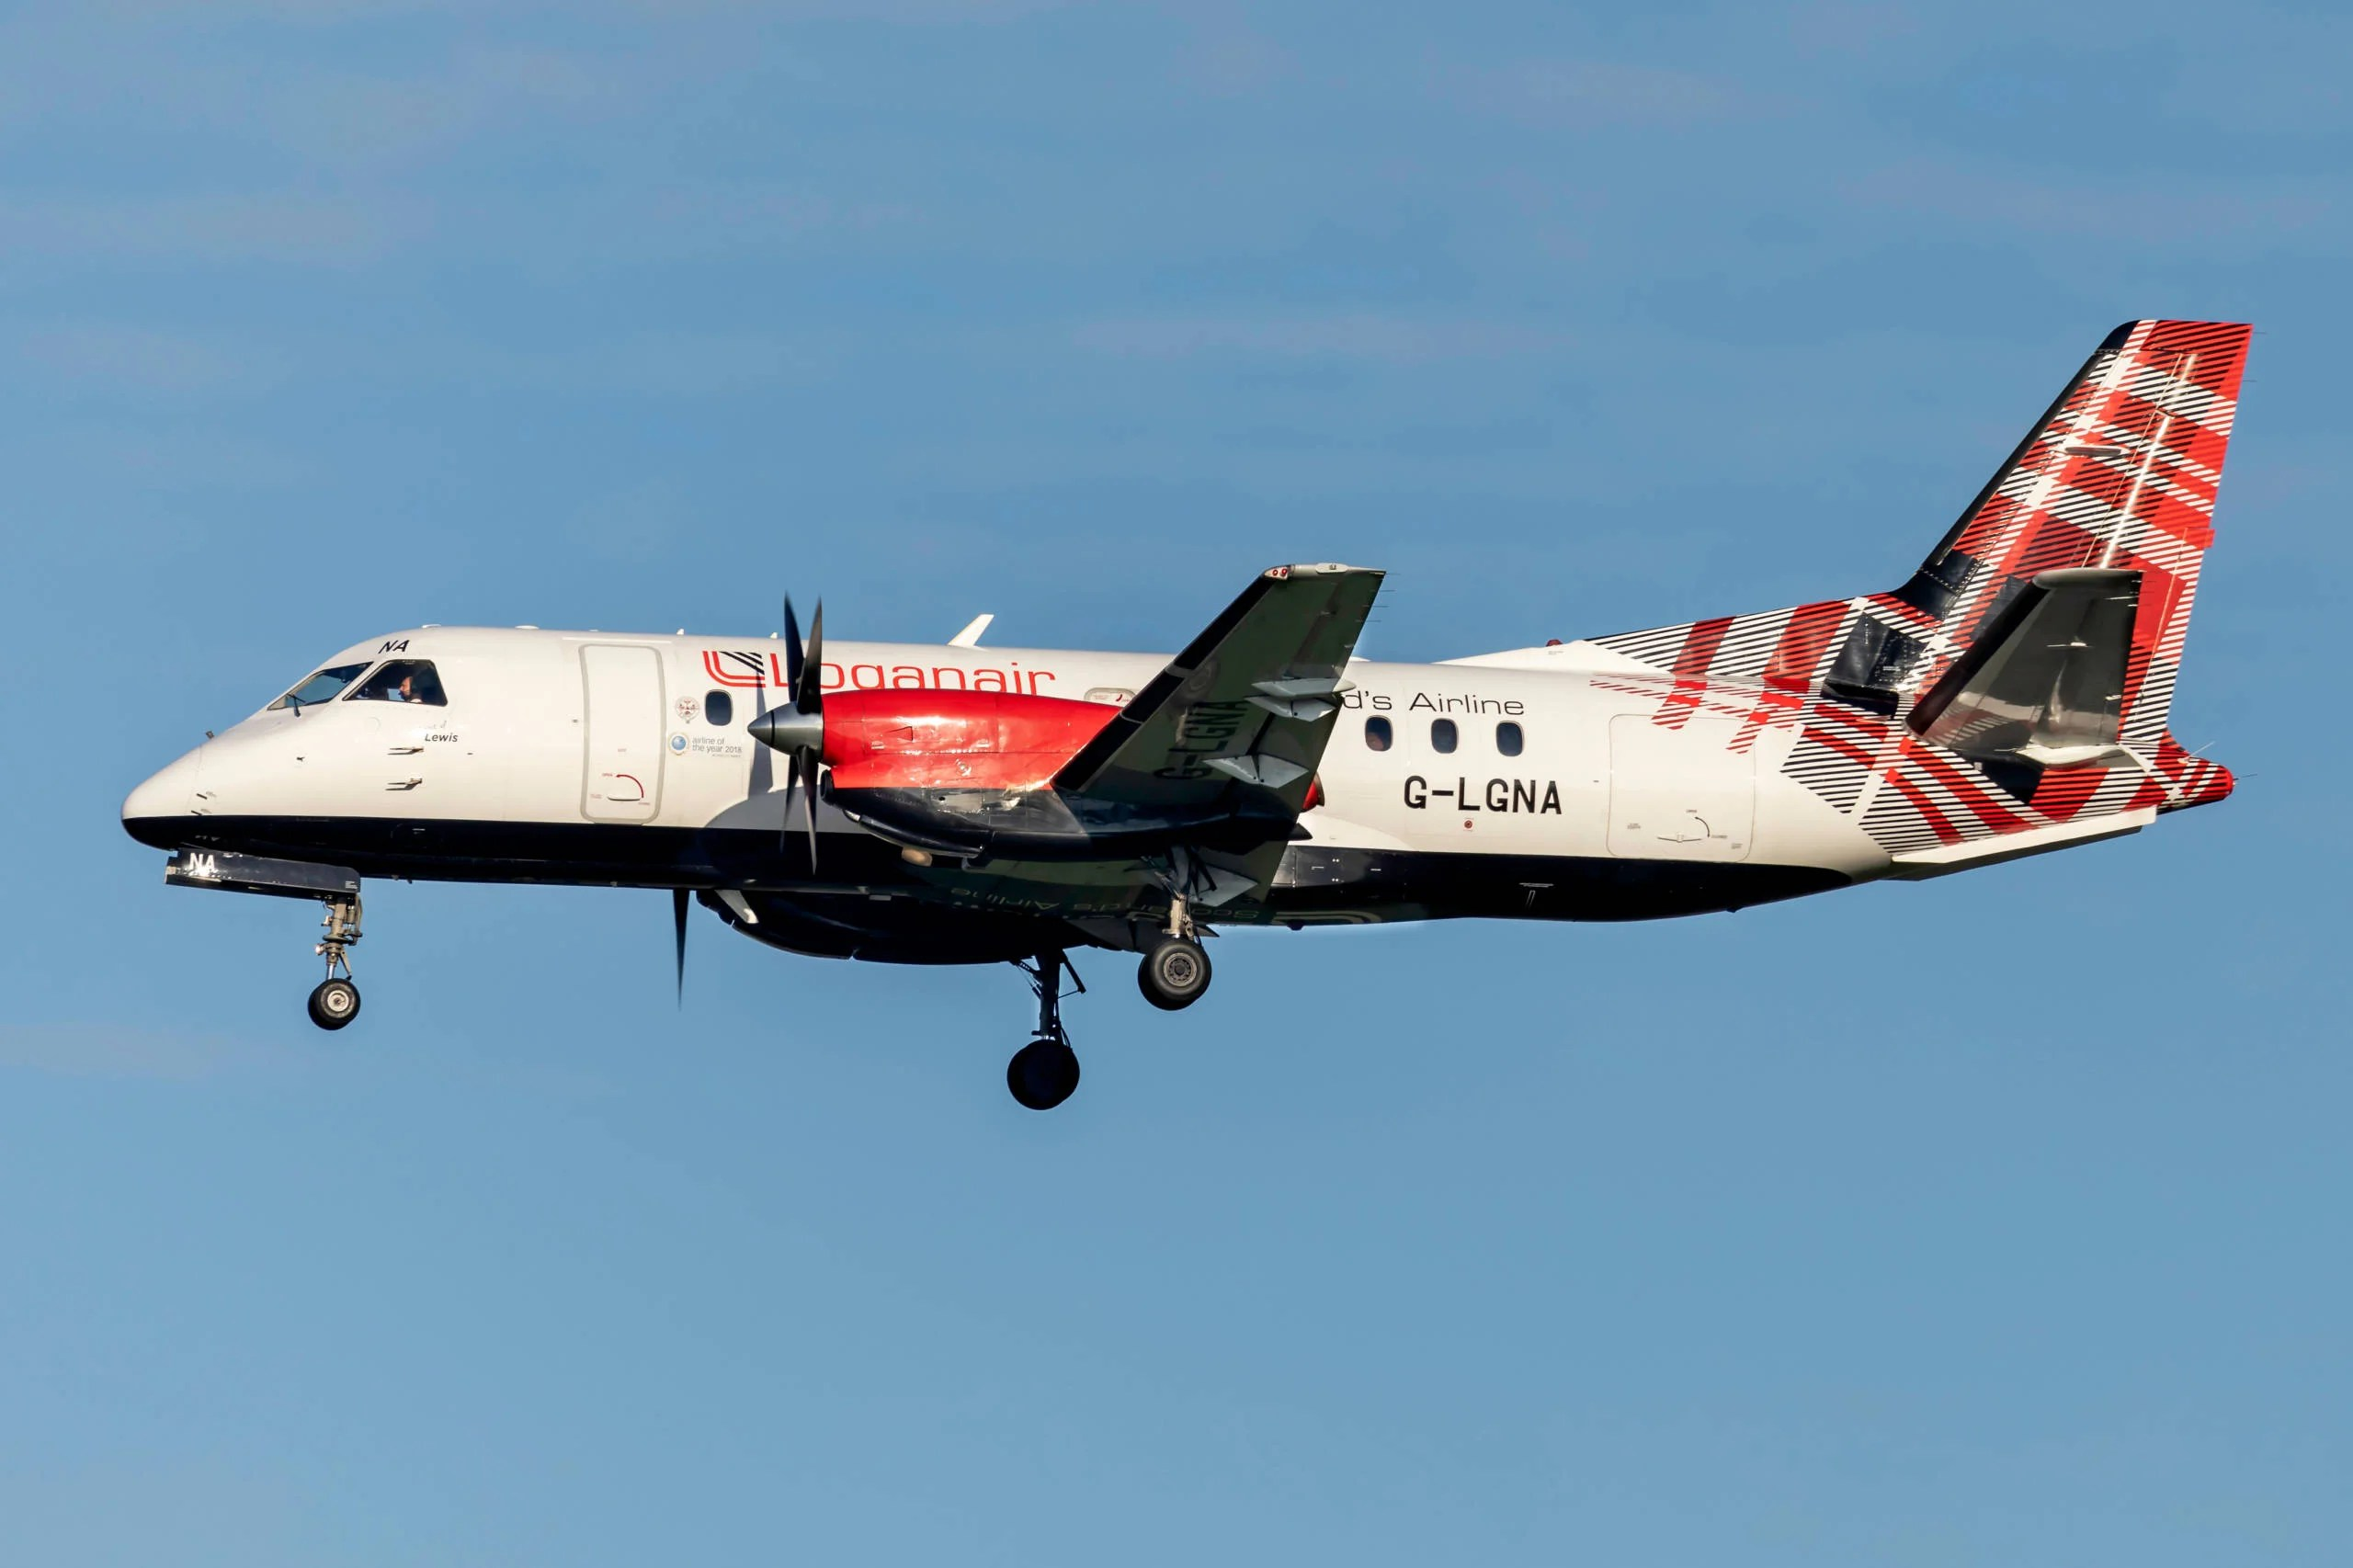 Loganair begins flying to London Heathrow for the first time